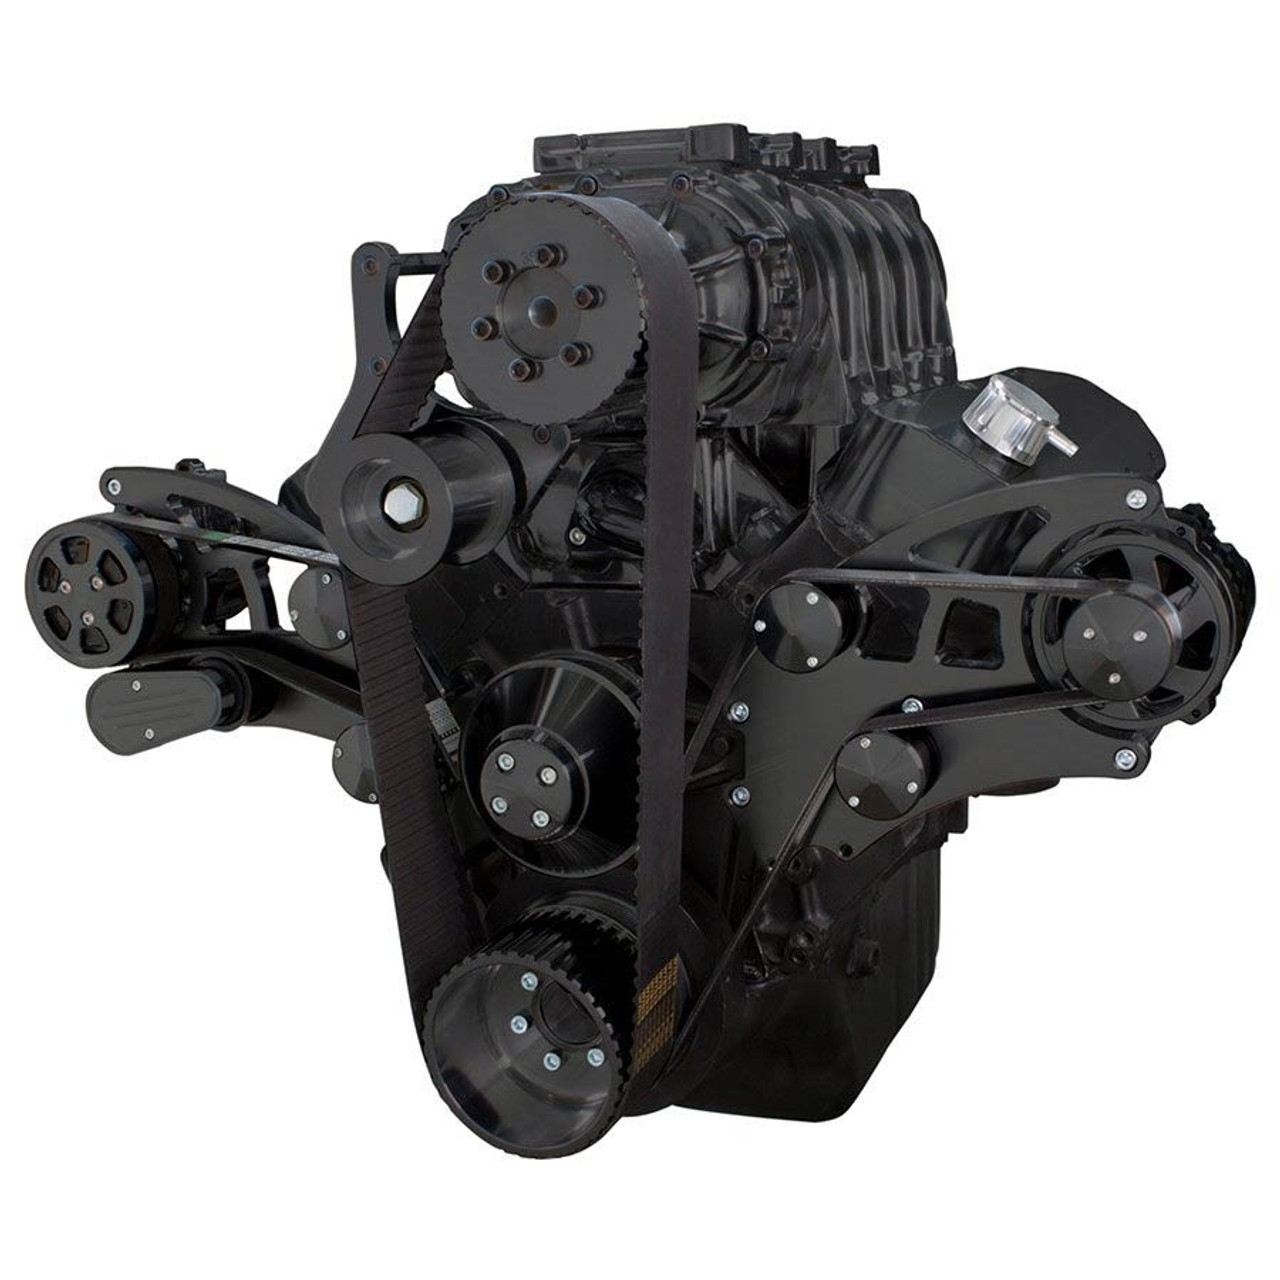 Black Serpentine Conversion Kit For Big Block Chevy 396 427 454 Cs130 Alternator Wiring To Wire A With The System Supercharger Ac